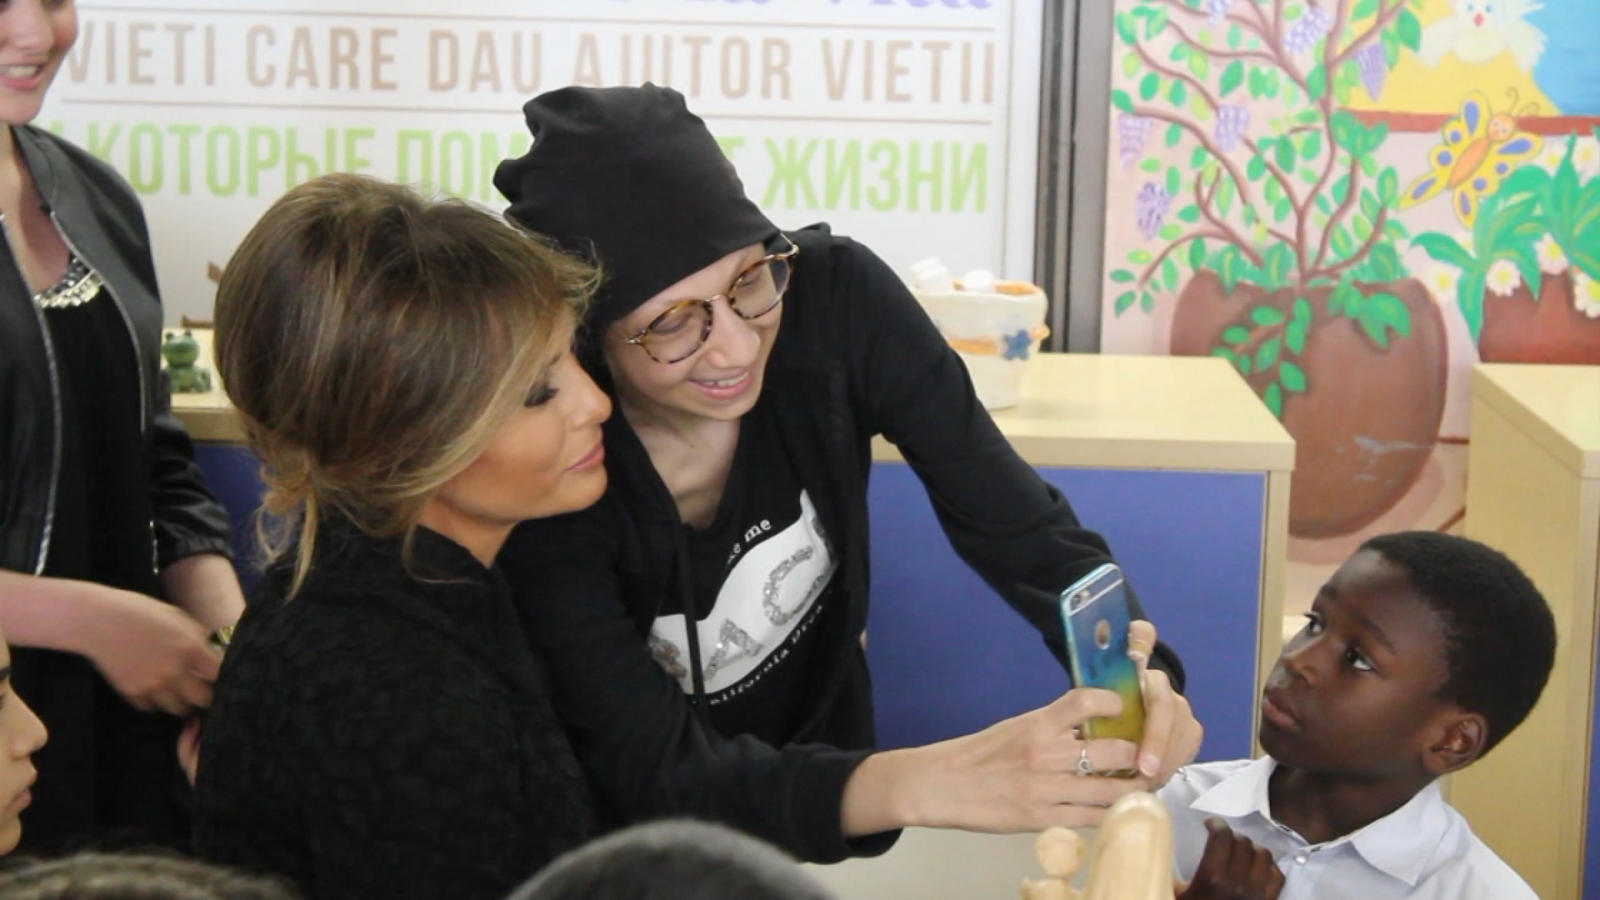 melania-trump-takes-selfies-with-children-at-vatican-hospital